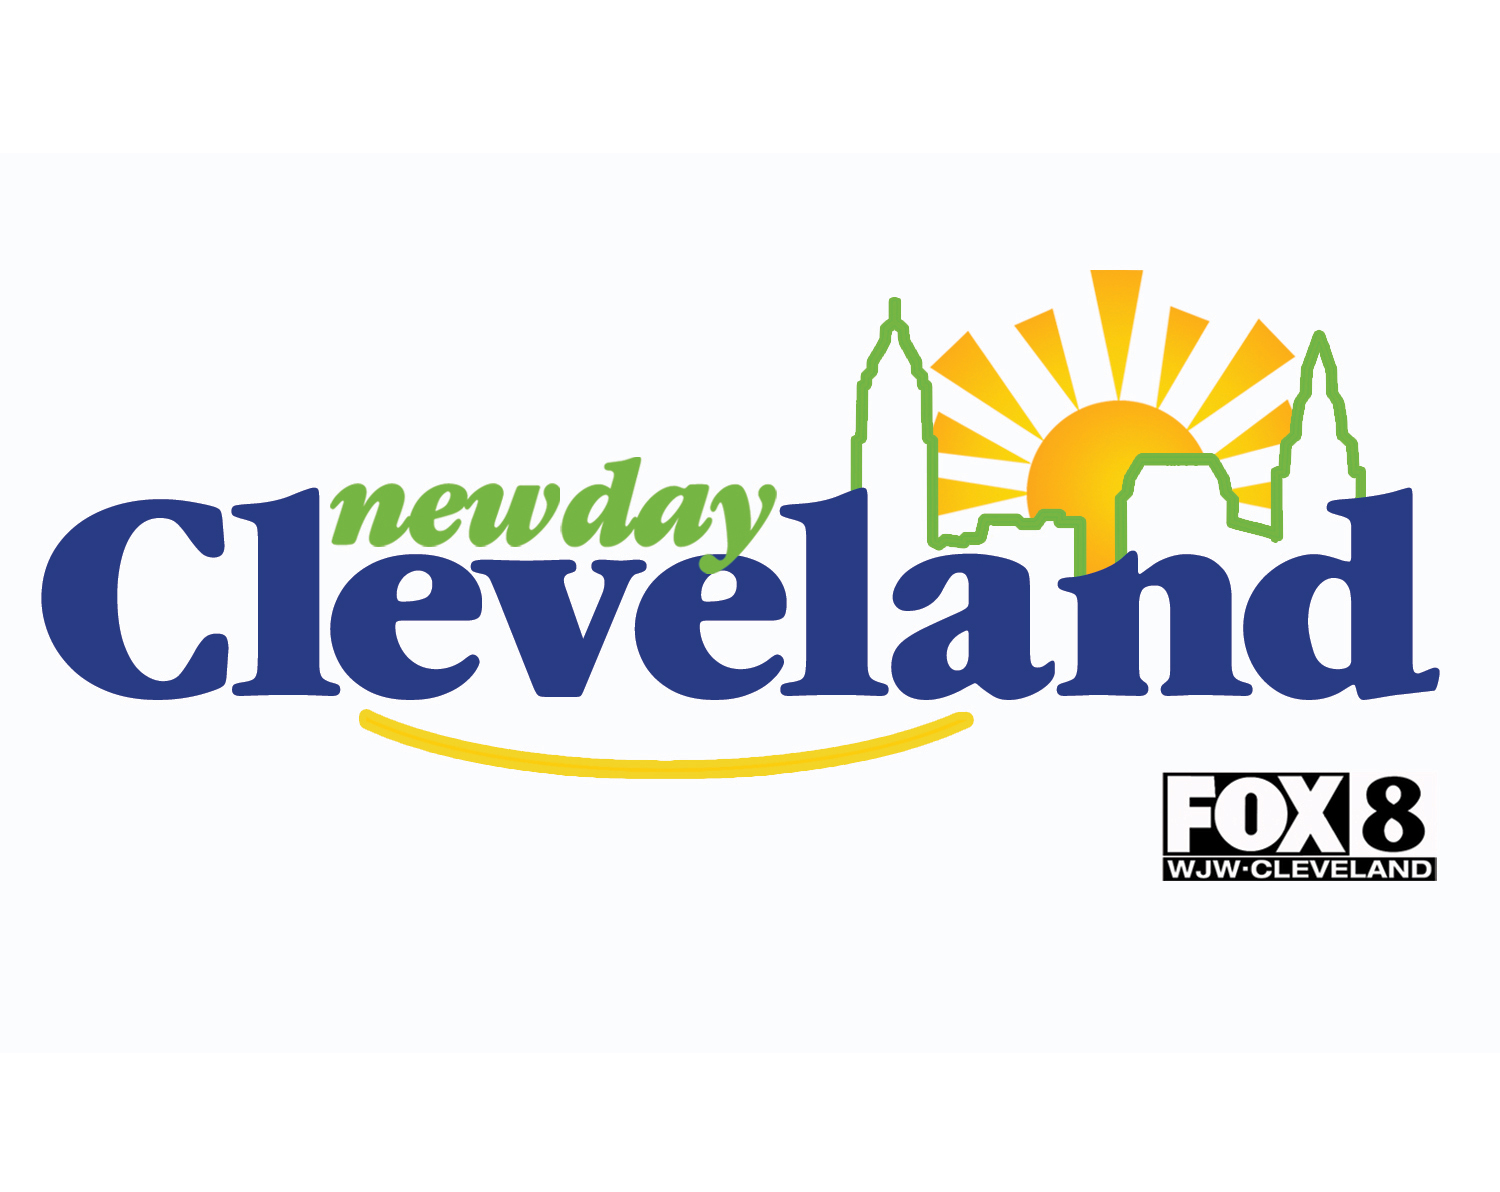 new-day cleveland mothers day gifts